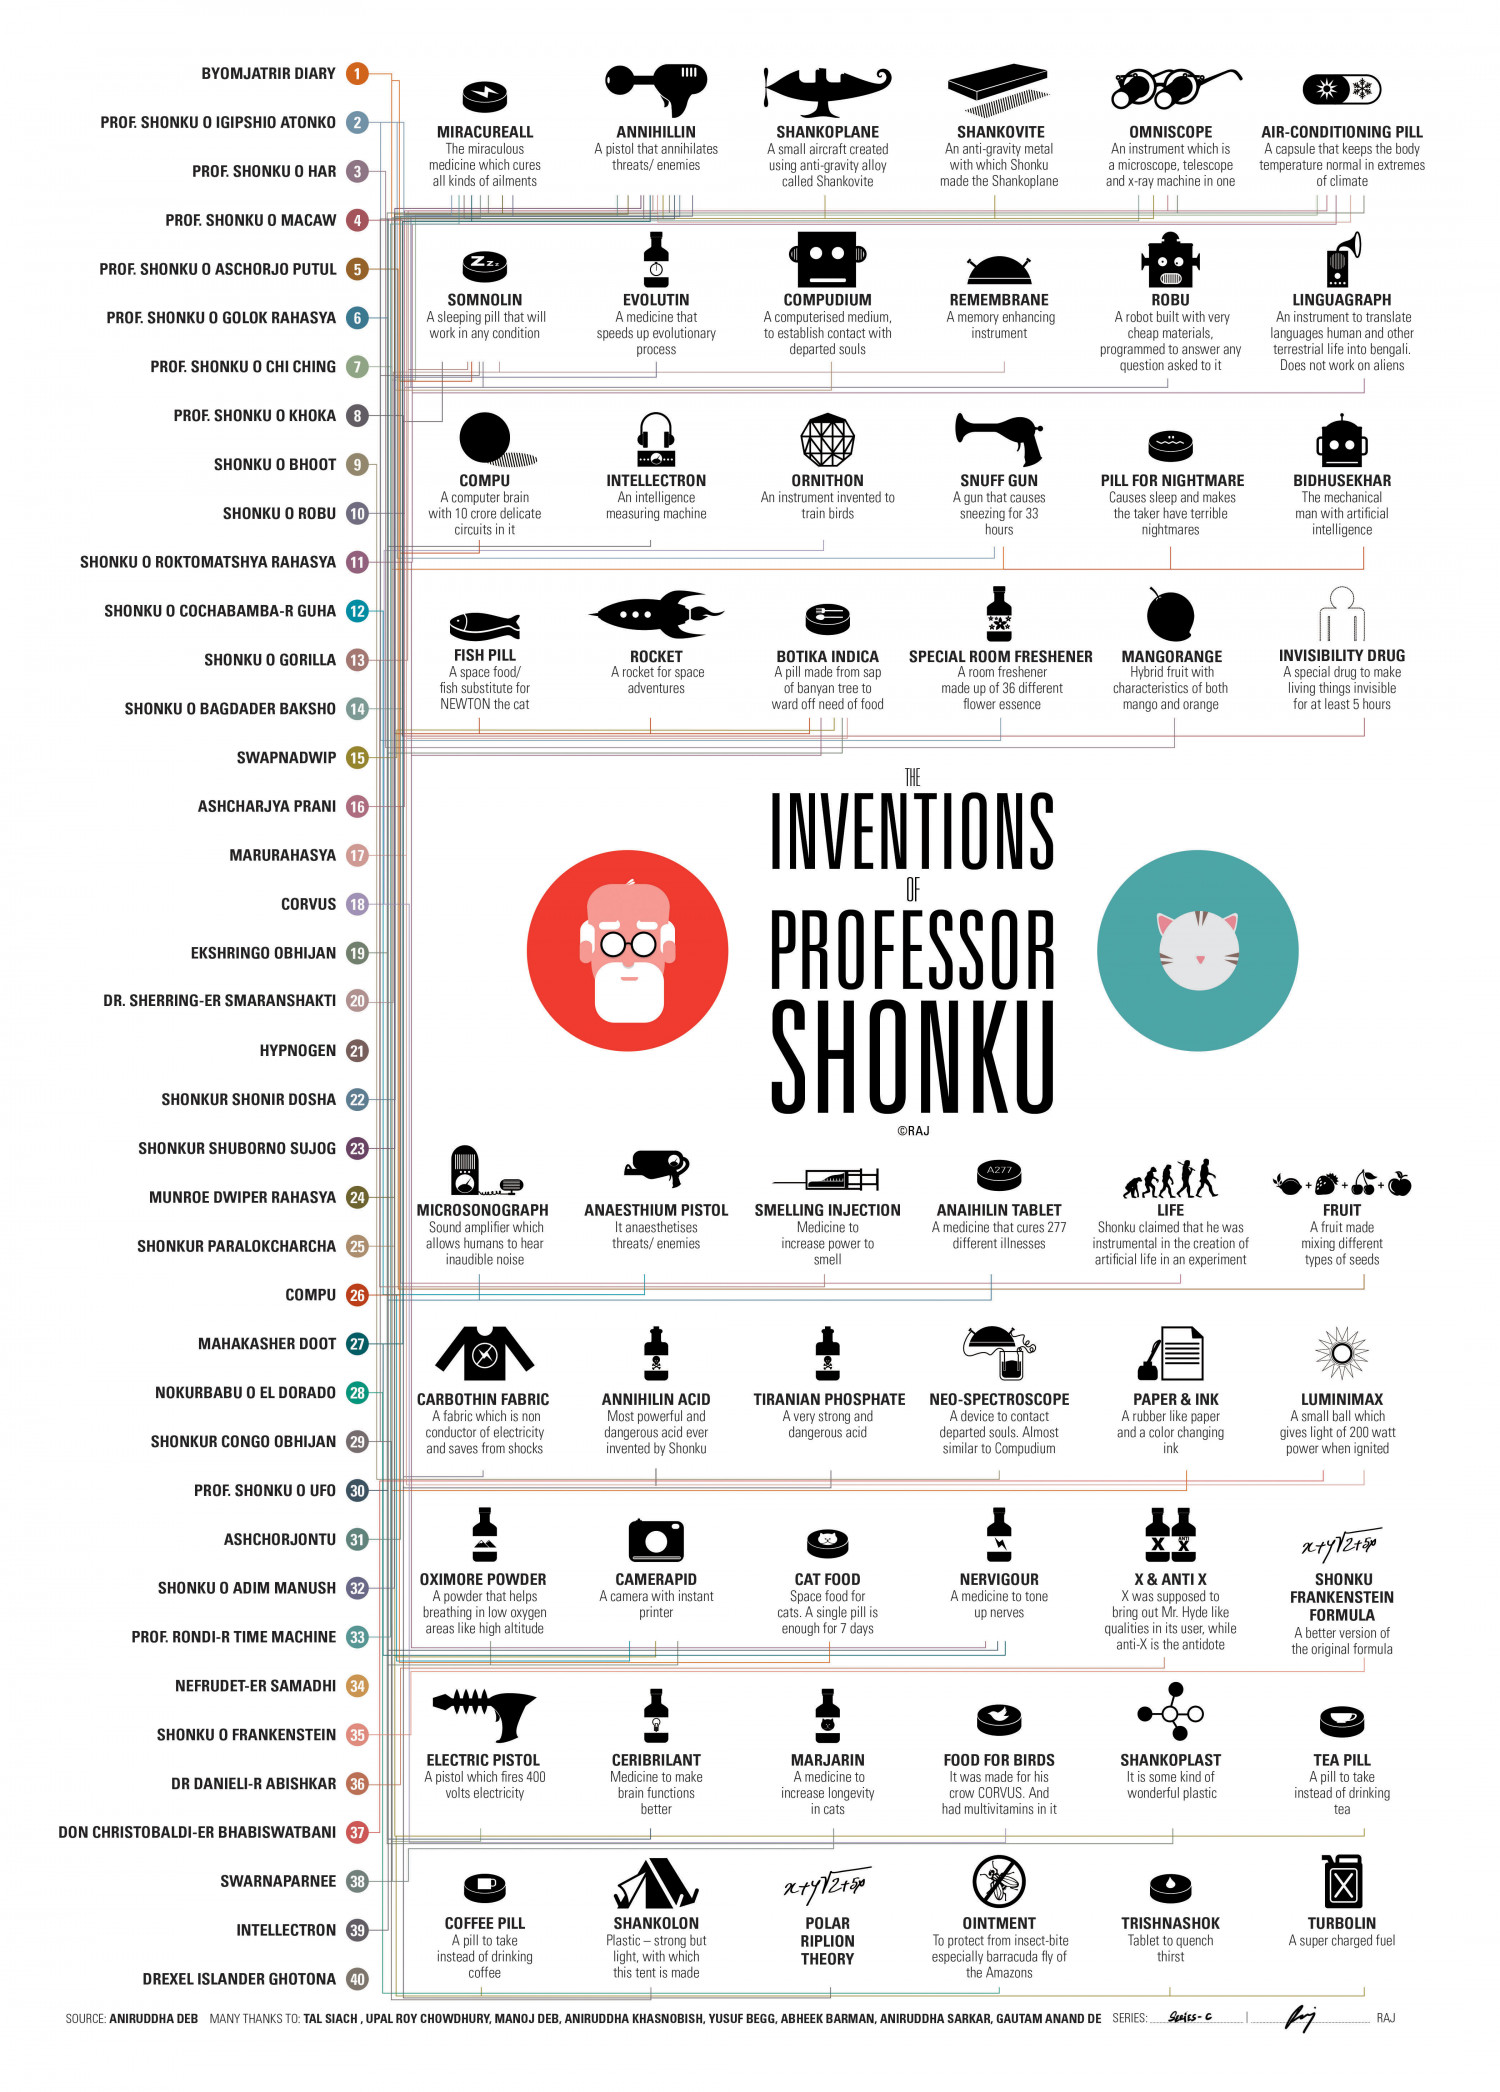 The Inventions of Professor Shonku   Infographic